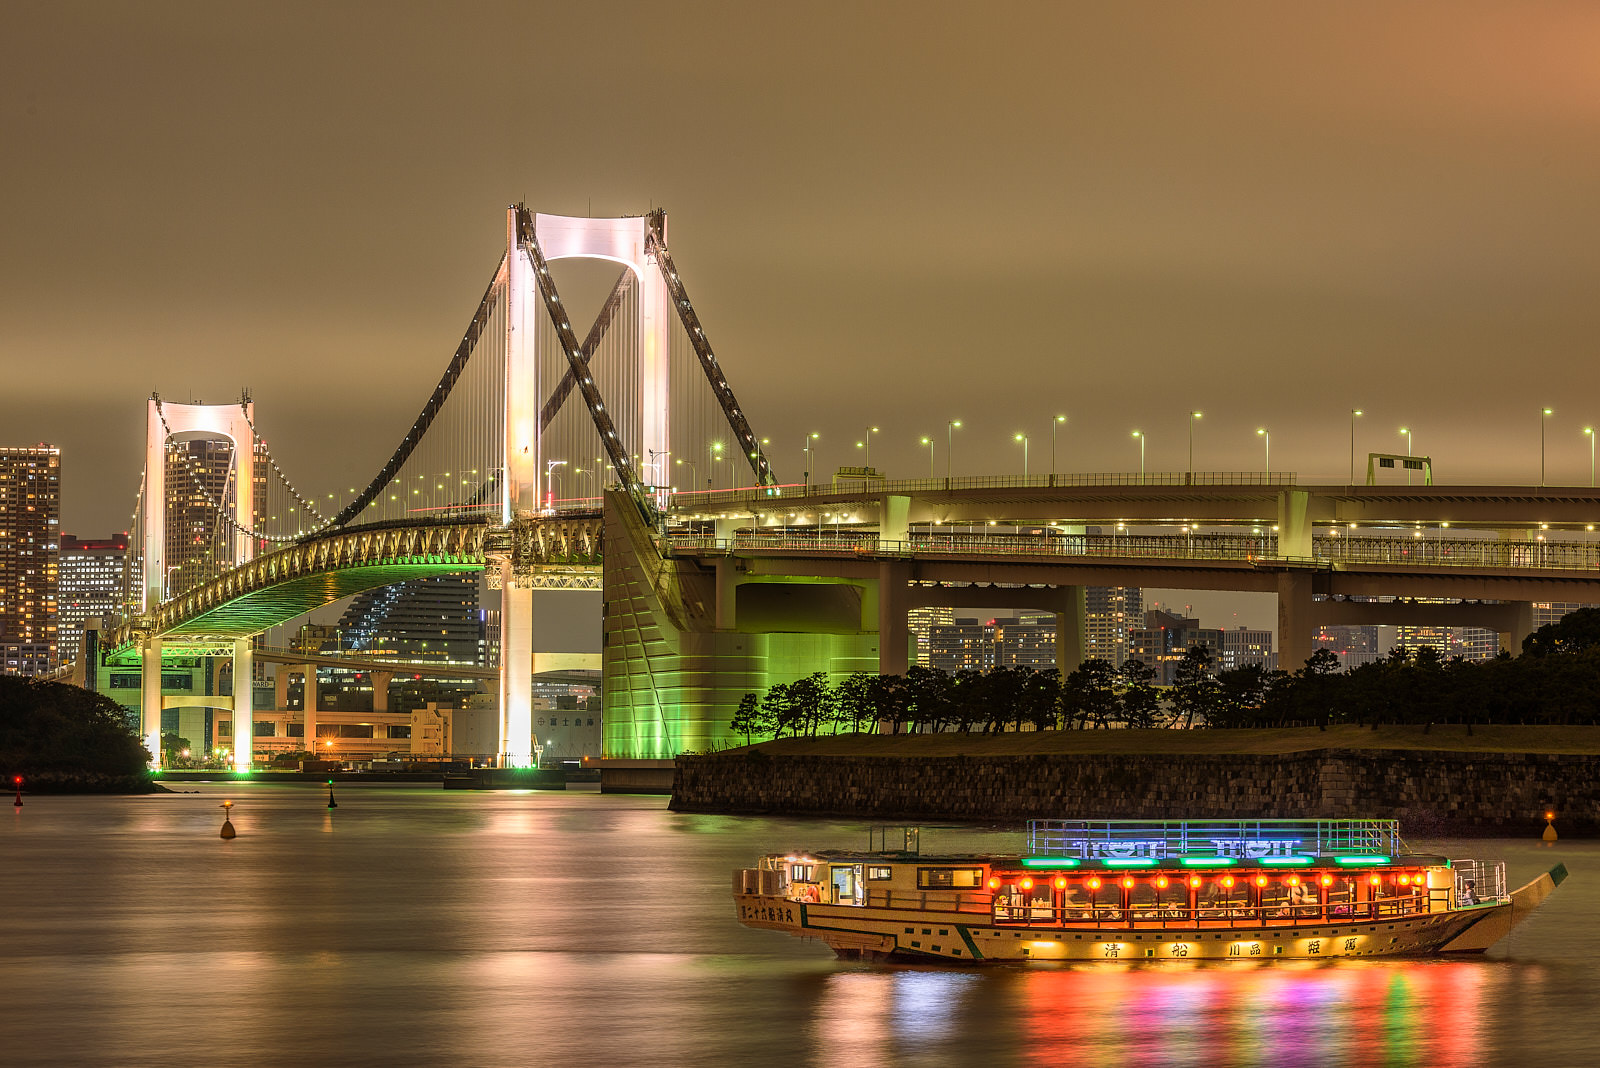 rainbow bridge in Tokyo, Japan illuminated at night with a colorful boat/taxi in the water